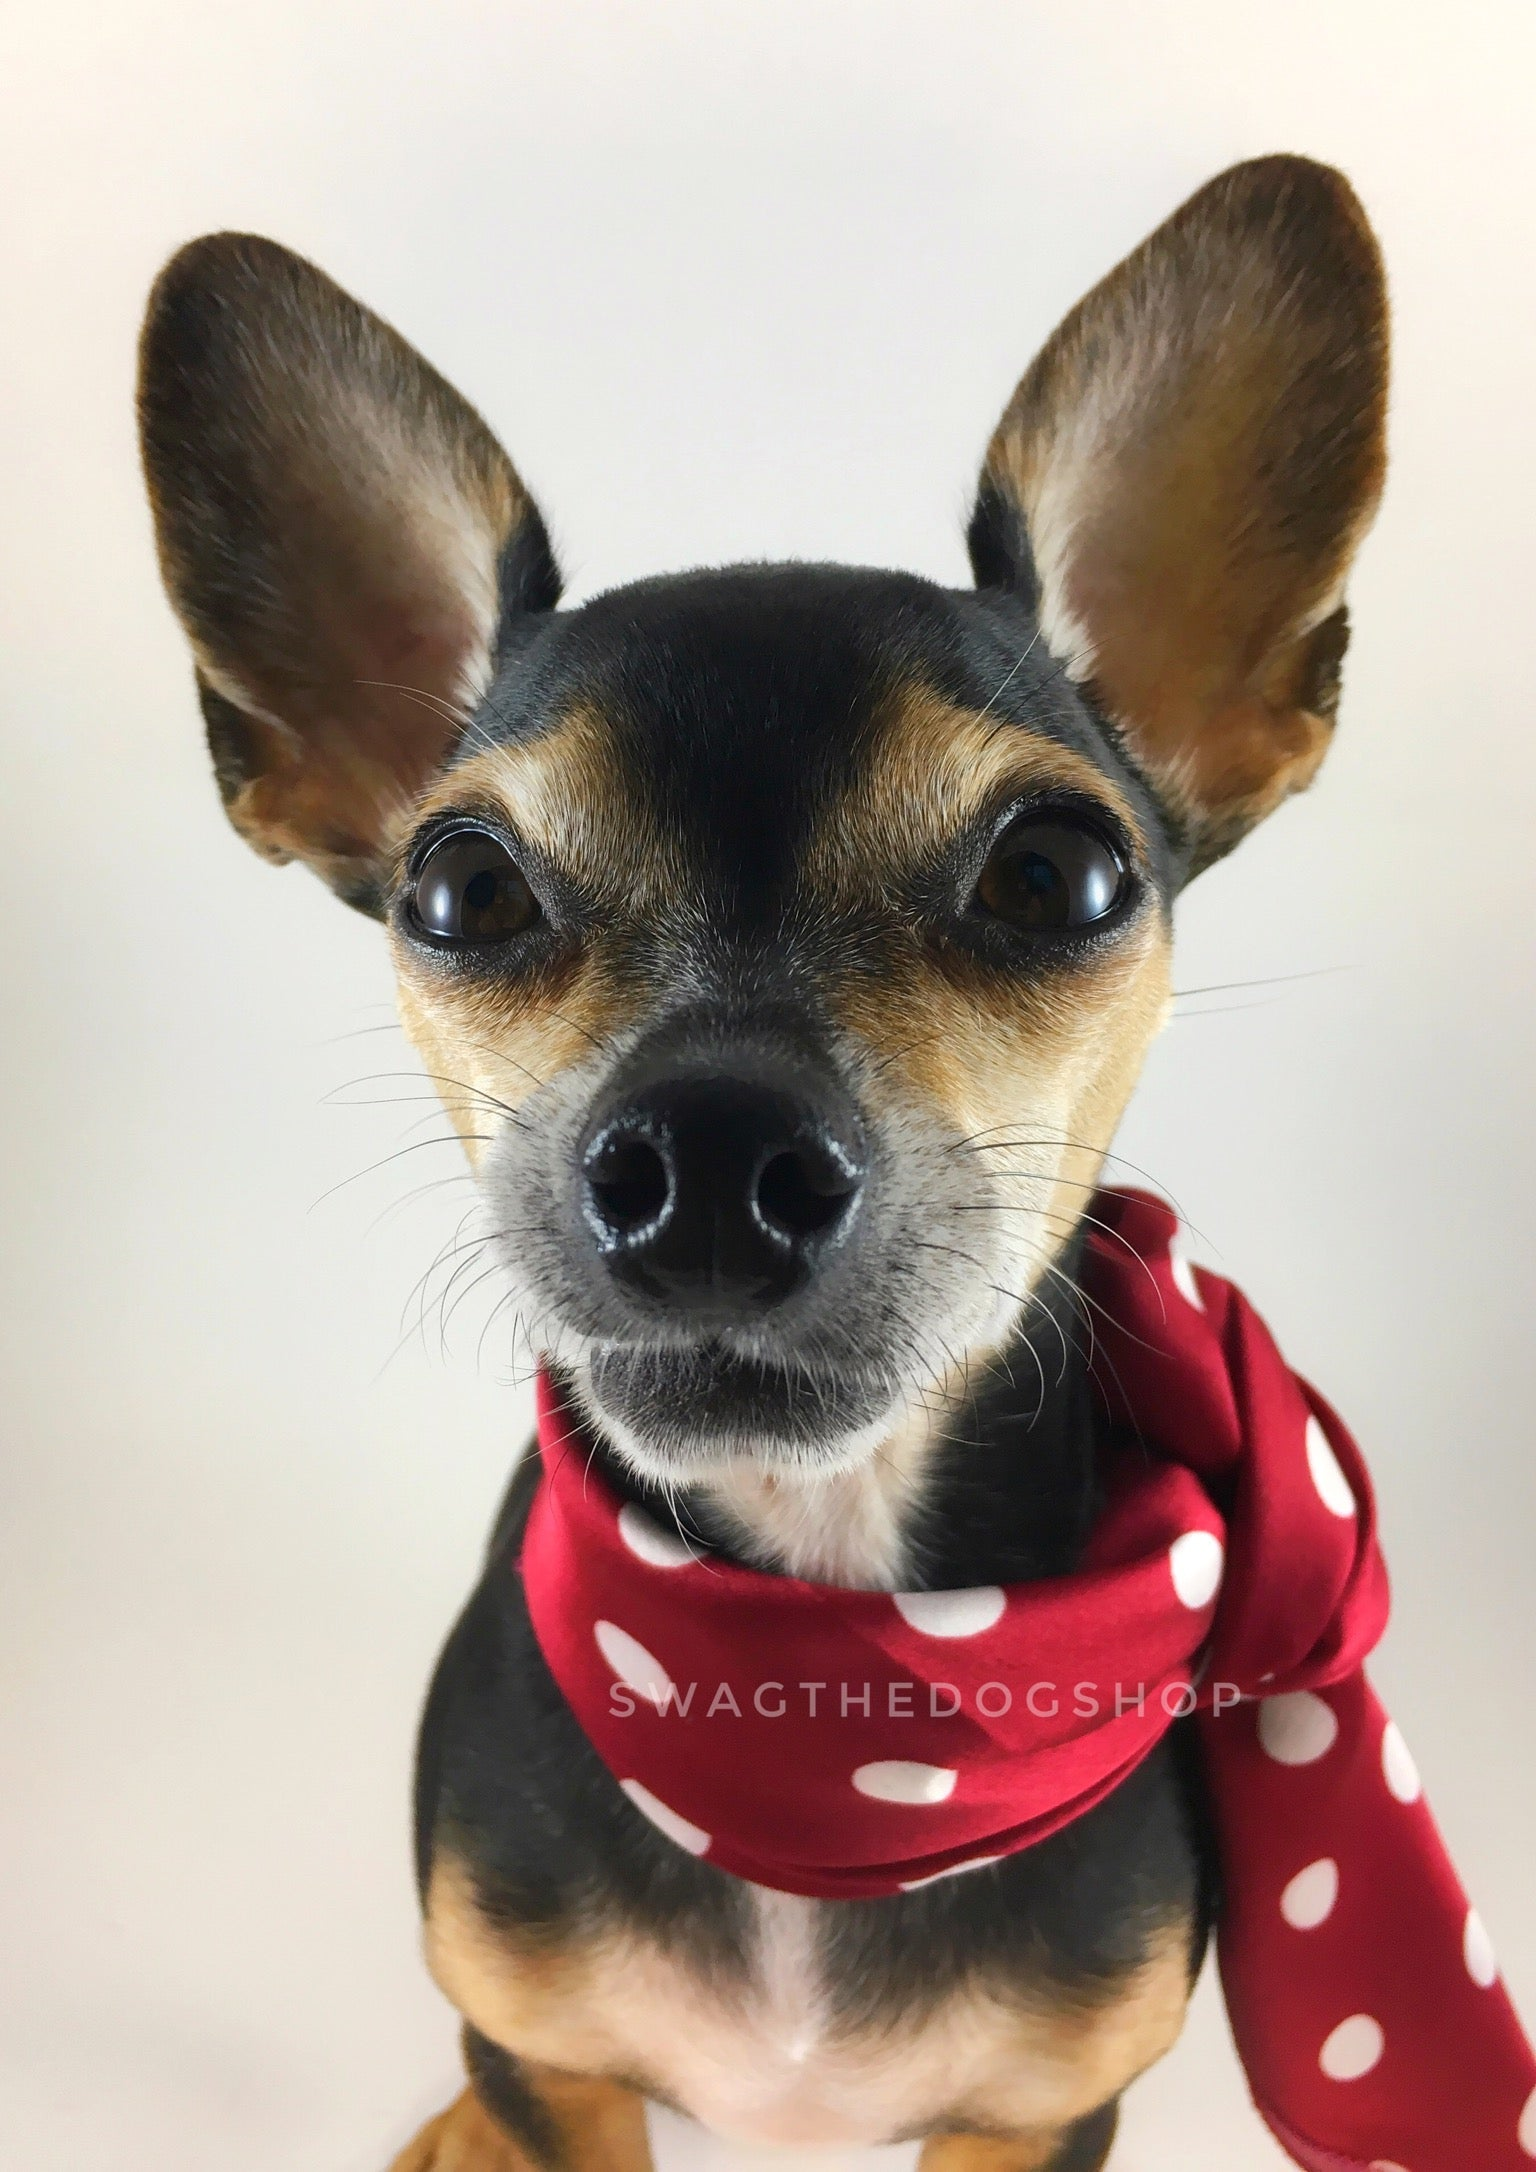 Polka Dot Burgundy Swagdana Scarf - Bust of Cute Chihuahua Wearing Swagdana Scarf as Neckerchief Tied At The Front. Dog Bandana. Dog Scarf.